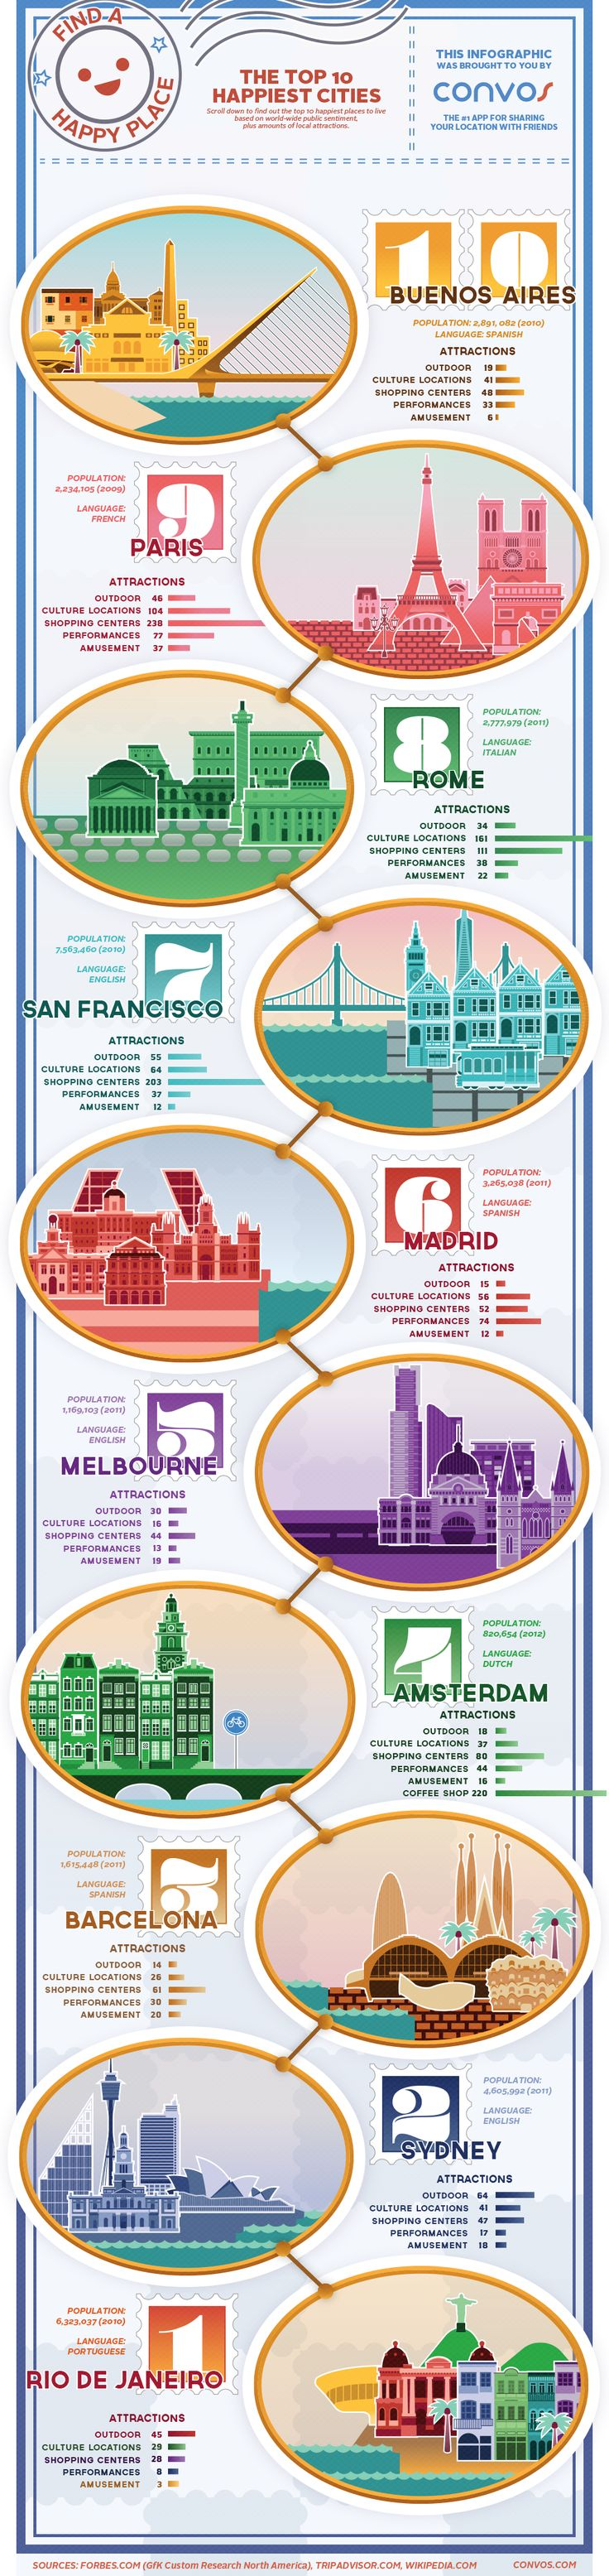 World's Happiest Cities: San Francisco Is The Happiest City In America | San Francisco, CA